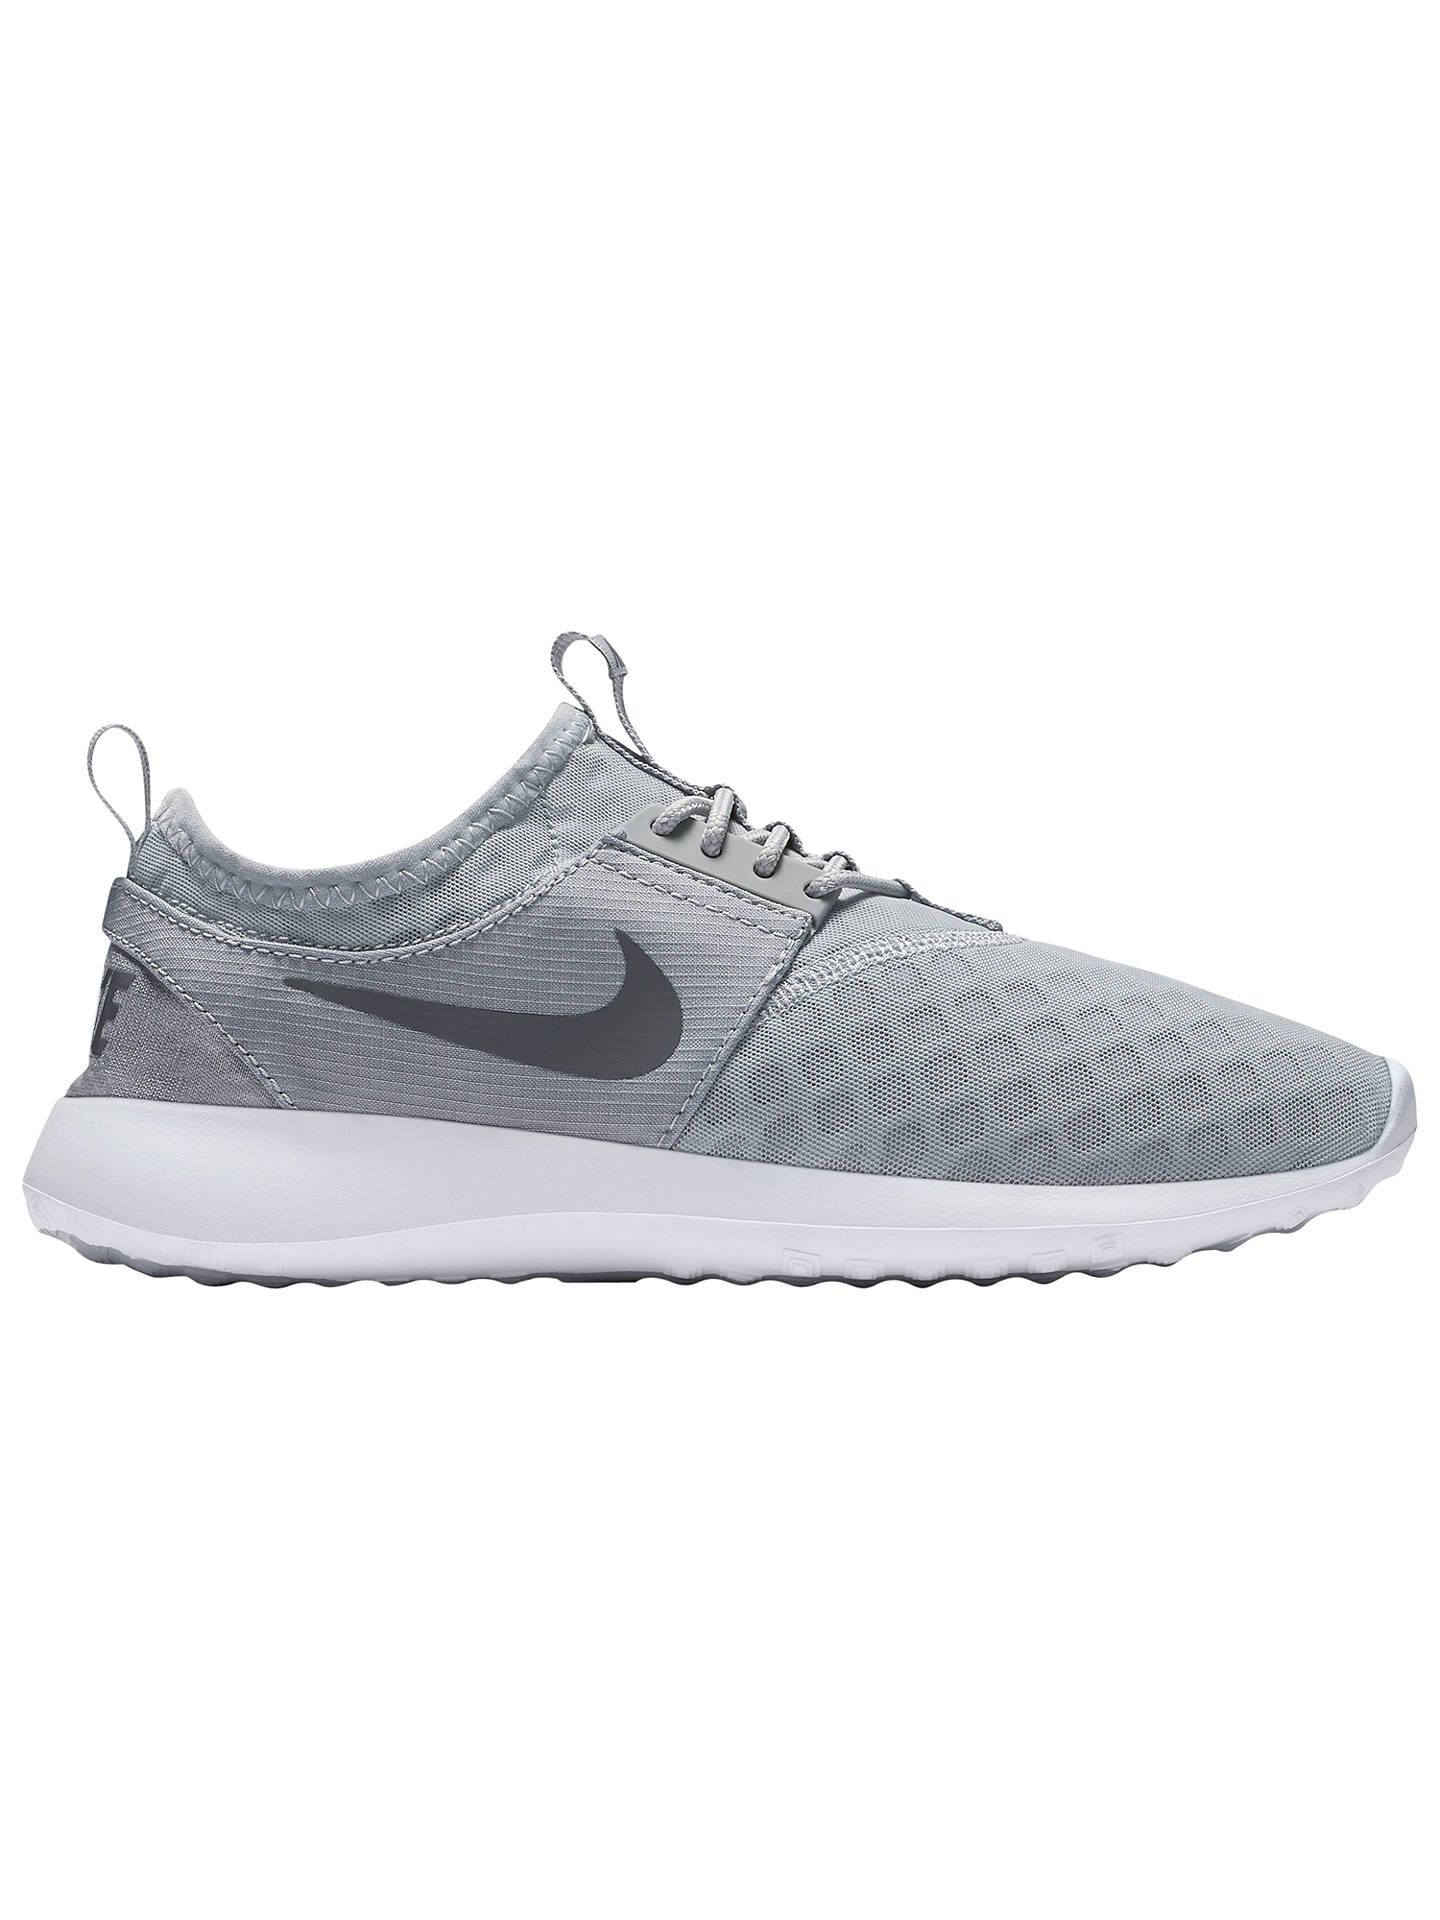 f667ad5a17c Nike Juvenate Women s Trainers at John Lewis   Partners